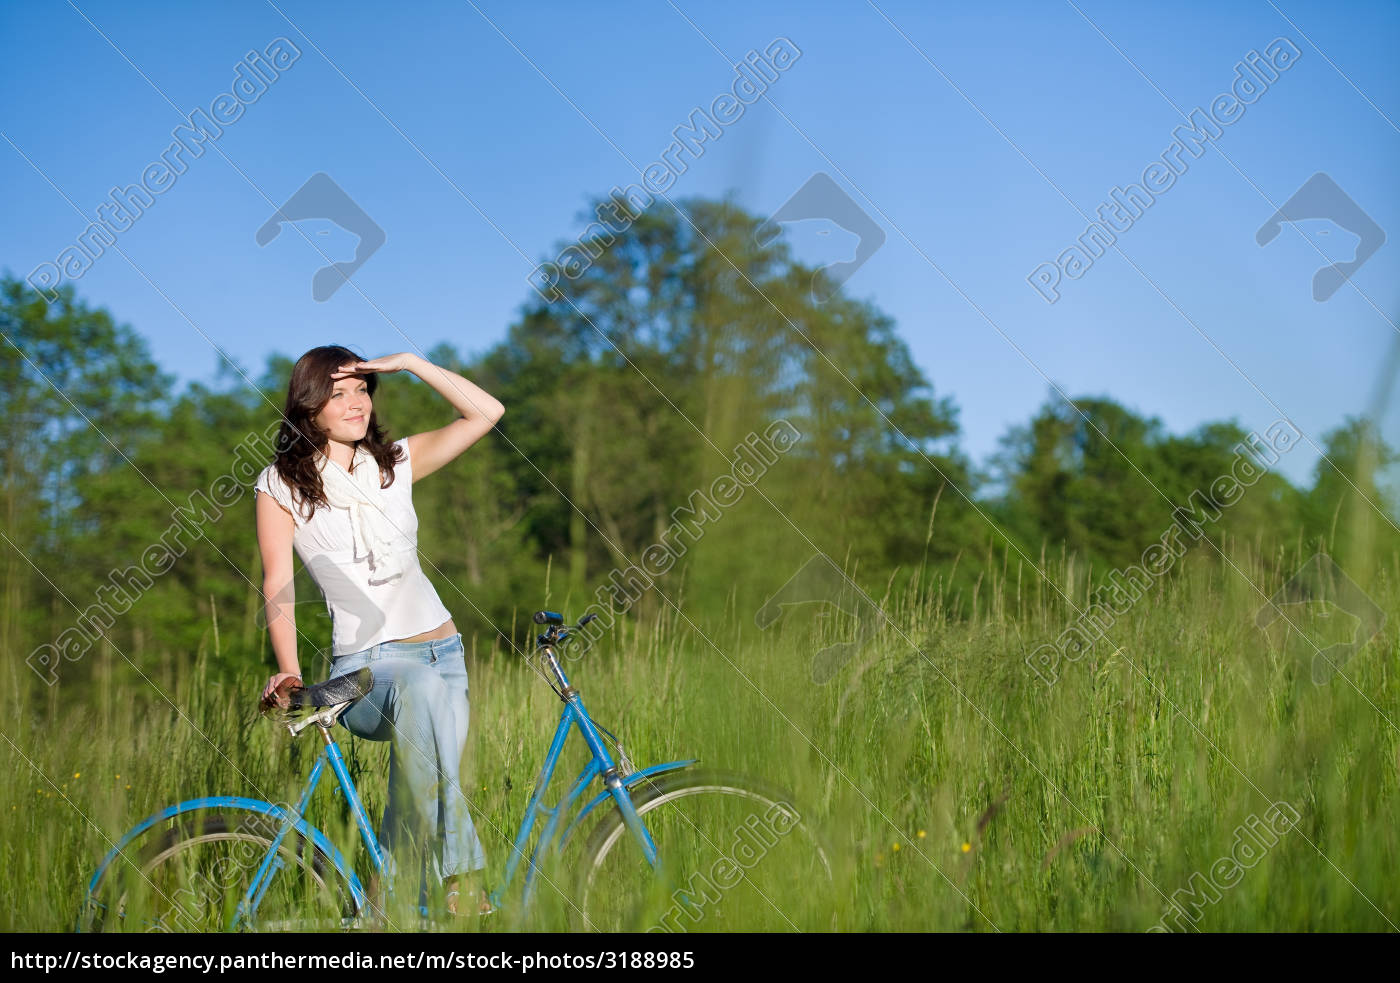 woman, with, old-fashioned, bike, in, meadow - 3188985